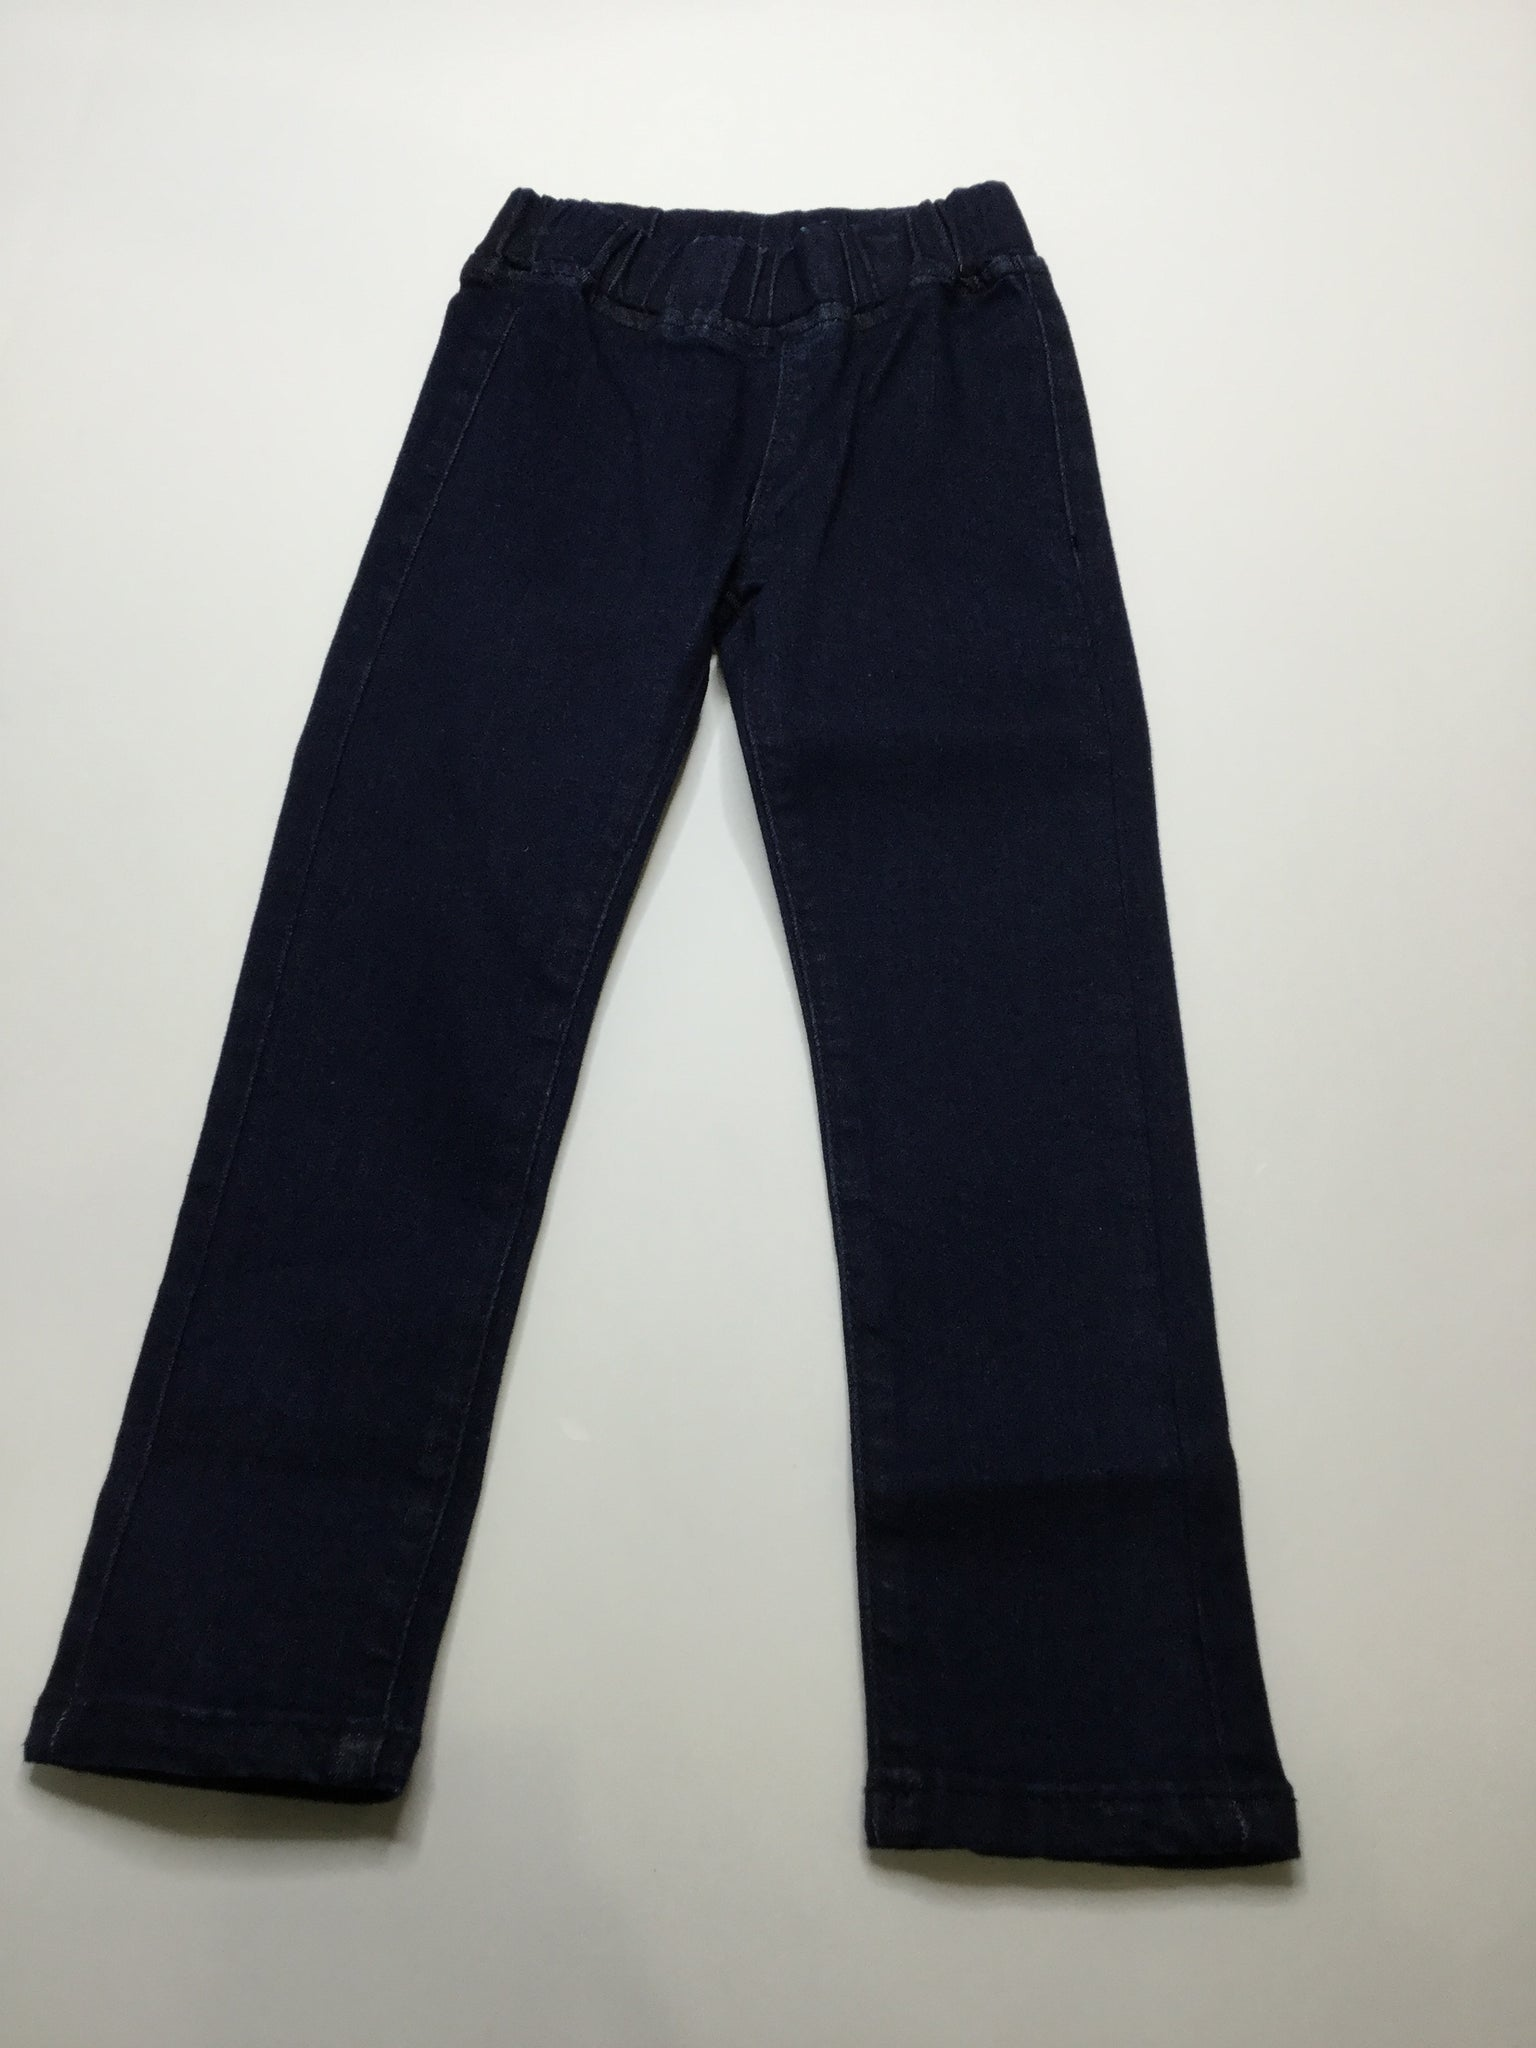 ML Kids Dark Denim Jeans